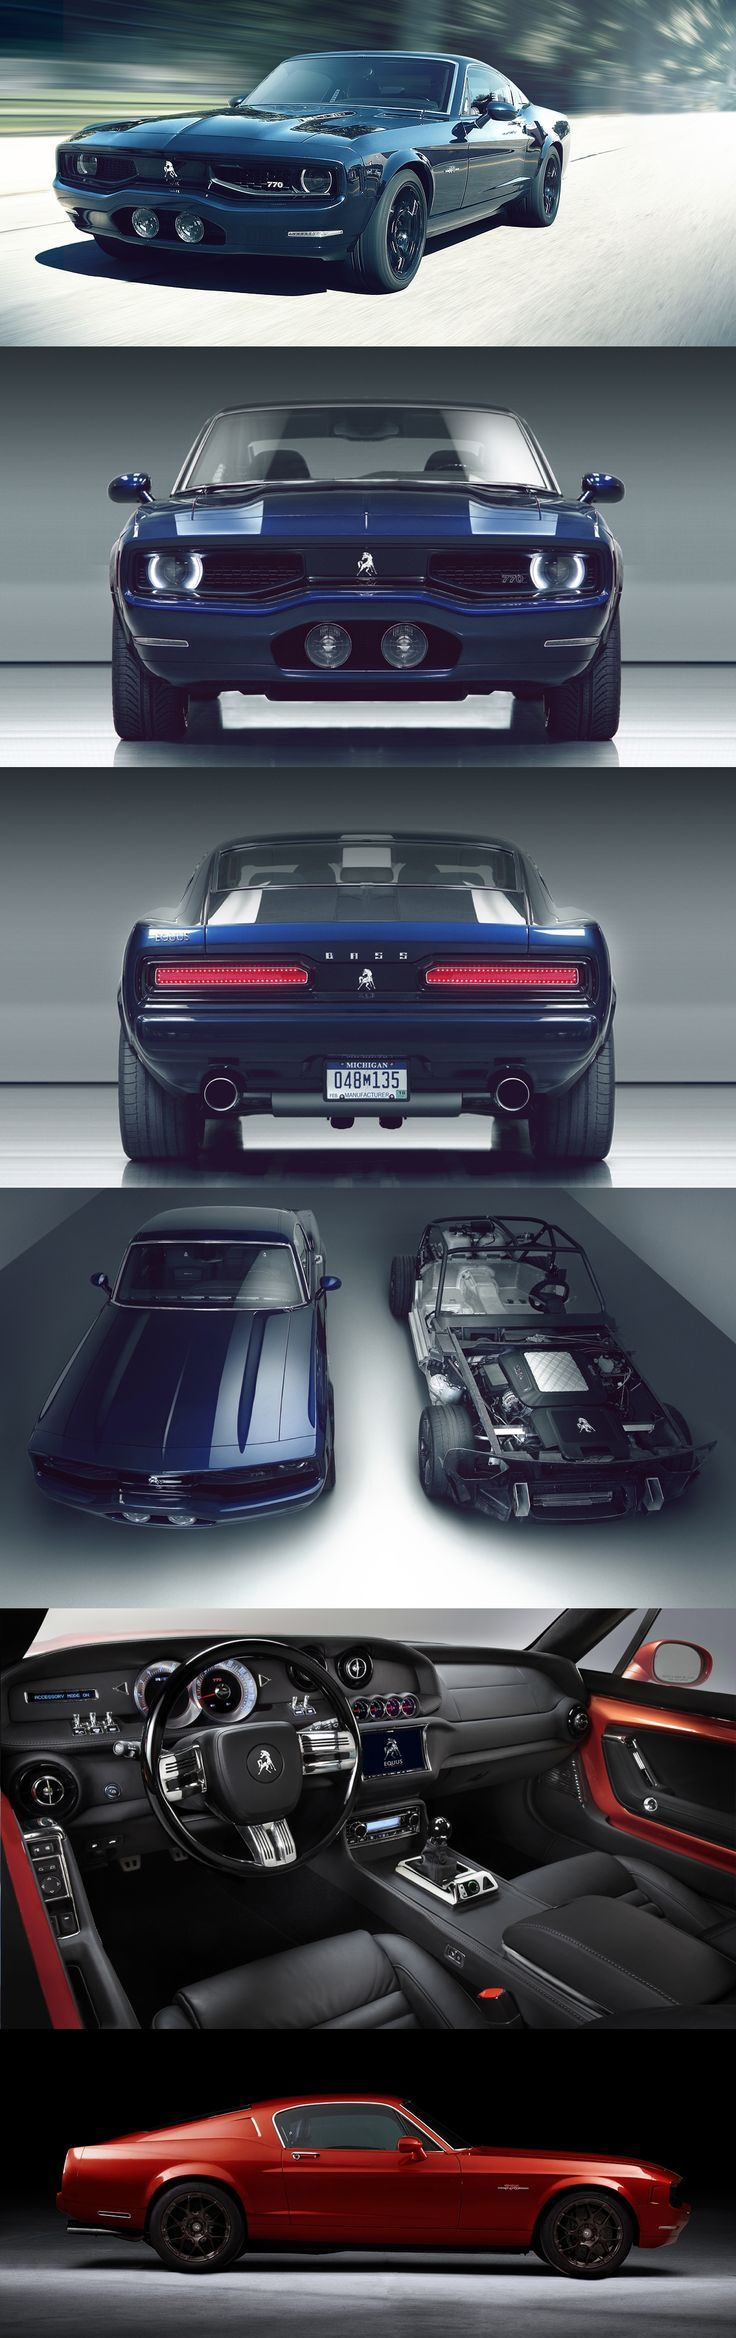 Equus Bass 770: The Ridiculous $250,000 Muscle Car For The 21st Century Badboy! Are you man enough? Hit the pic to find out... #americanmuscle...Re-pin...Brought to you by #CarInsurance at #HouseofInsurance in Eugene, Oregon